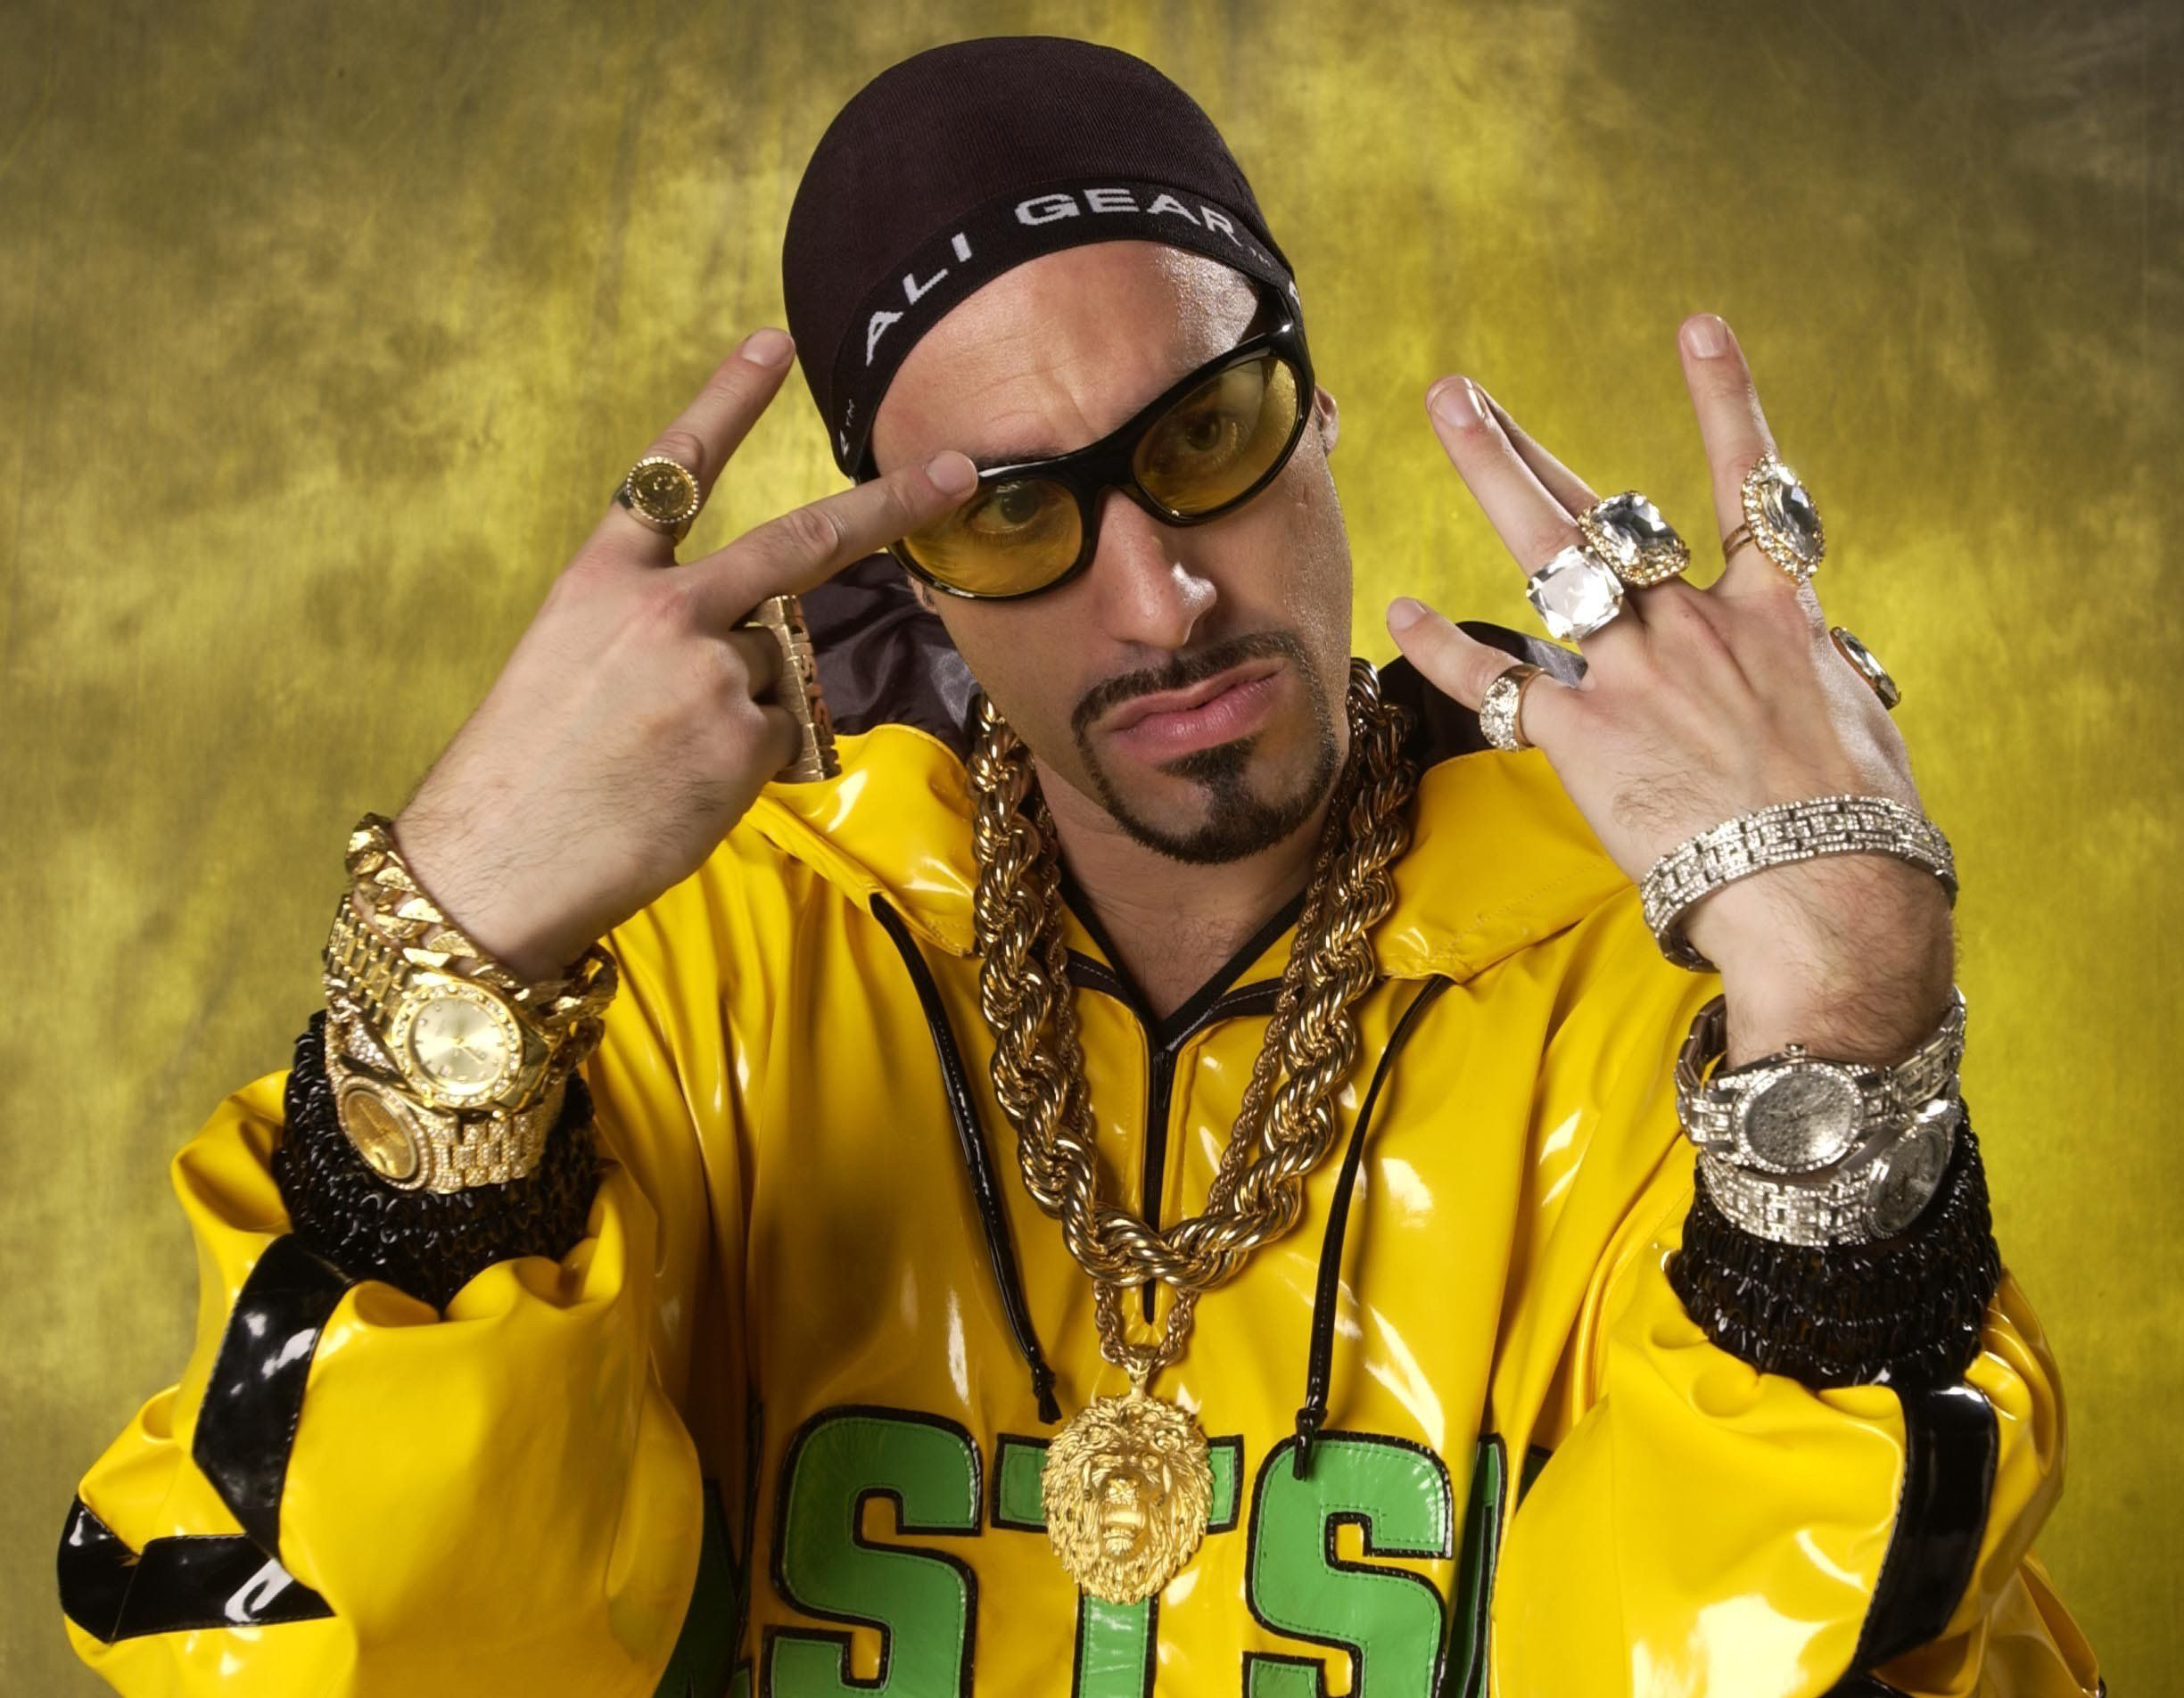 FRANKFURT - NOVEMBER 8:  Comedian Ali G aka Sacha Baron Cohen backstage at the MTV Europe Awards 2001 in Festhalle, Frankfurt, Germany, November 8, 2001. Ali G presented the awards show. (Photo by John Rogers/Getty Images)